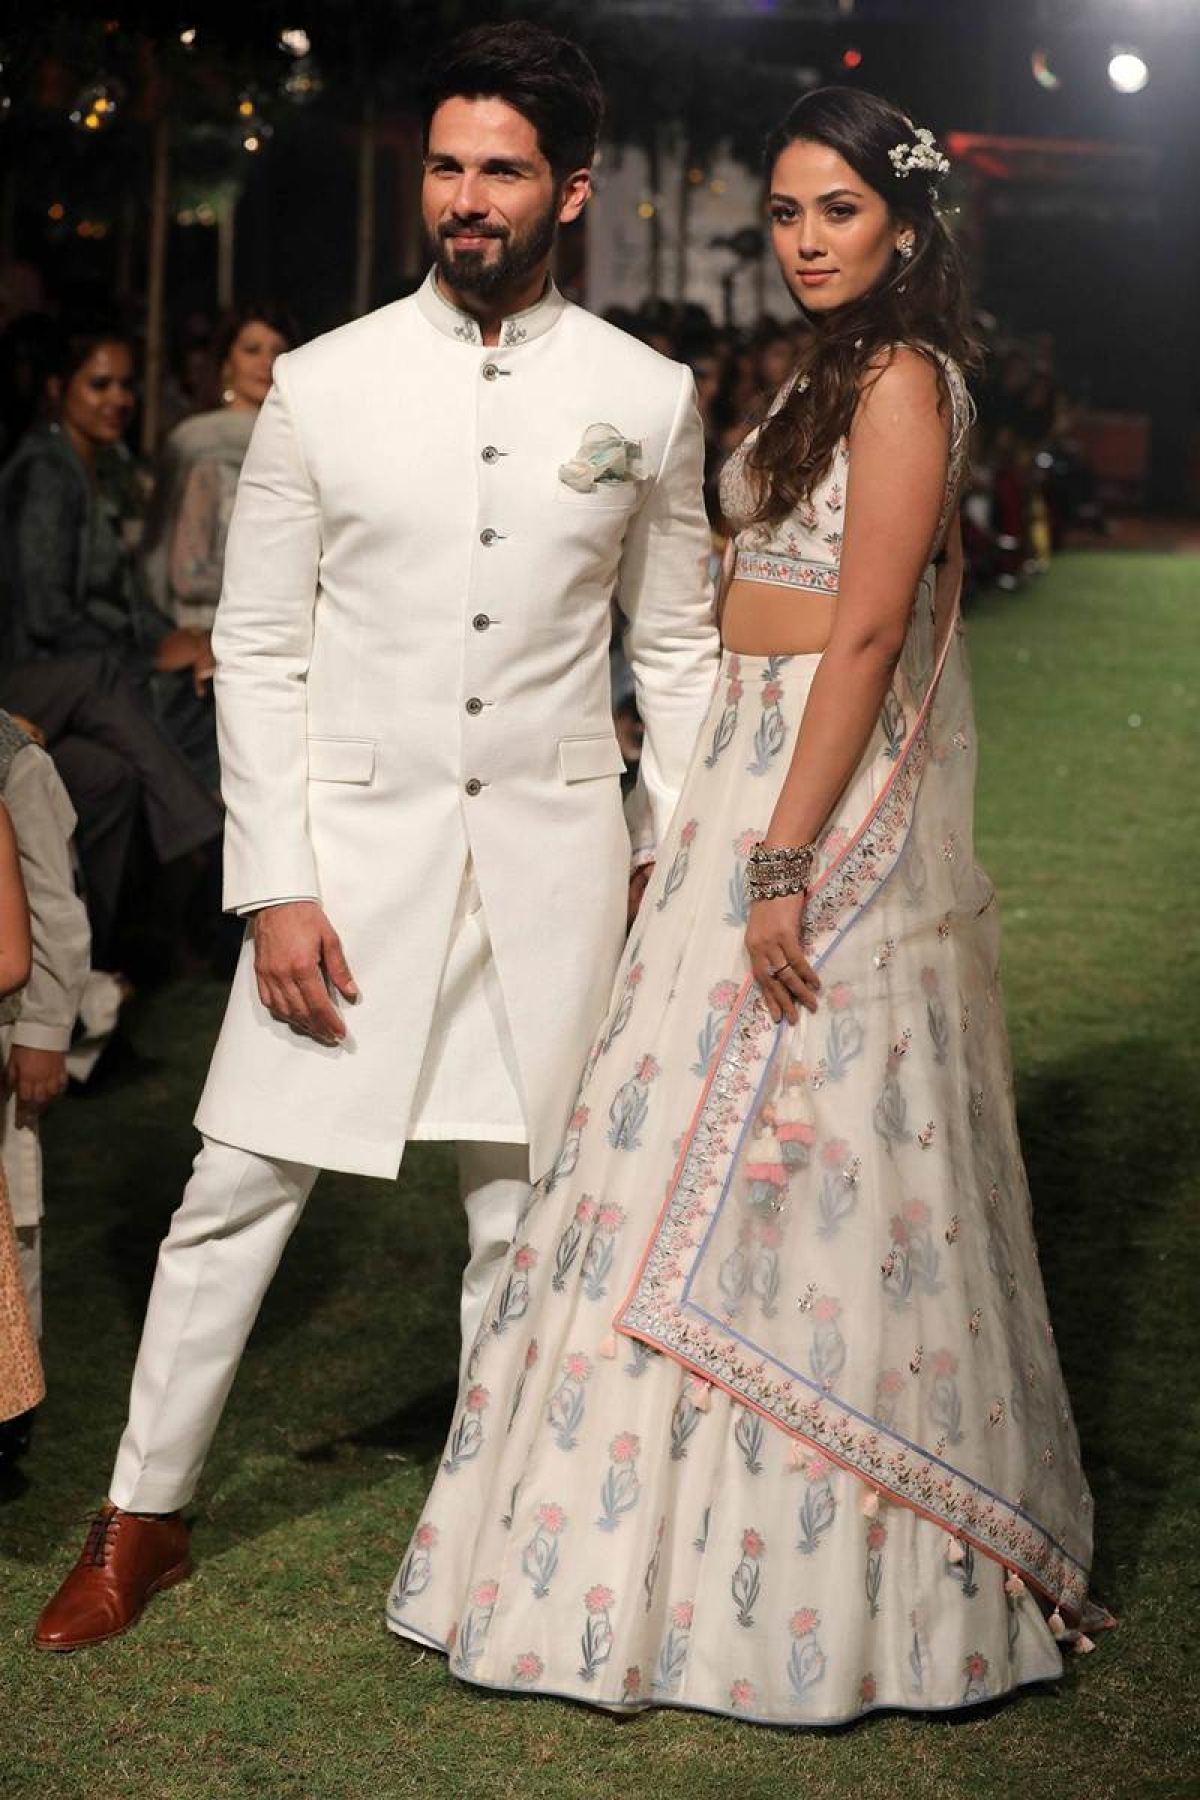 Lakme Fashion Week 2018: Shahid-Mira walk the ramp as bride and groom for Anita Dongre